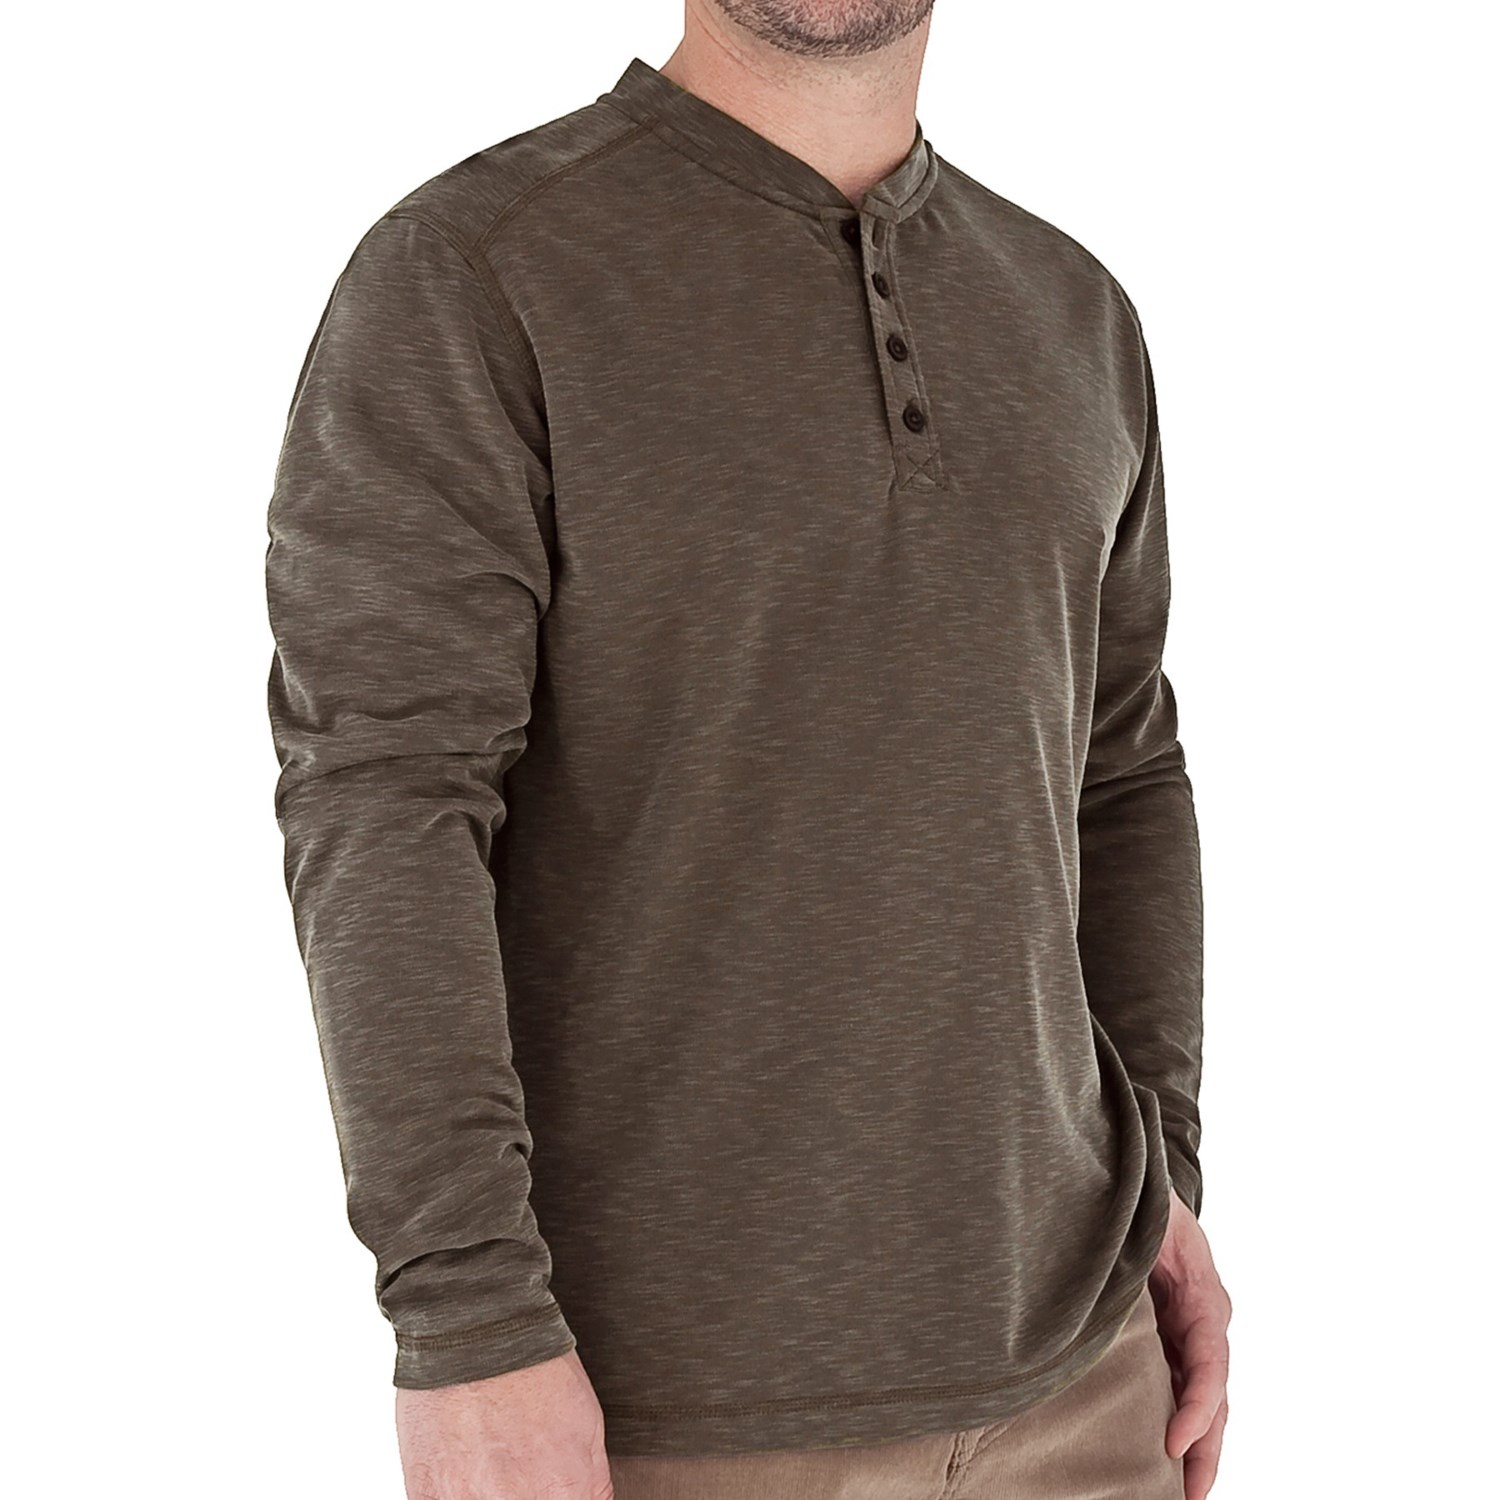 FREE SHIPPING AVAILABLE! Shop whomeverf.cf and save on Knit Shirts.